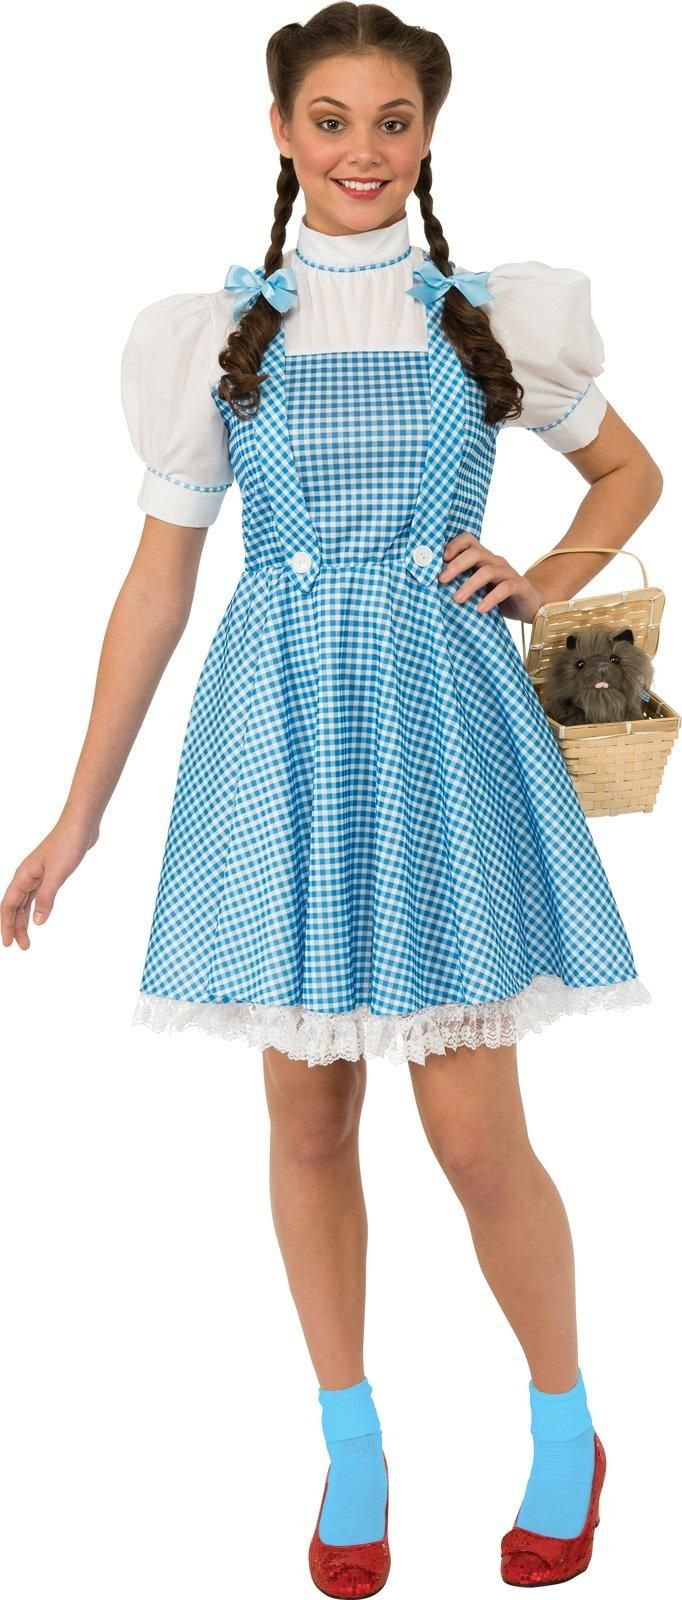 29 best Halloween Wizard of Oz 2015 images on Pinterest